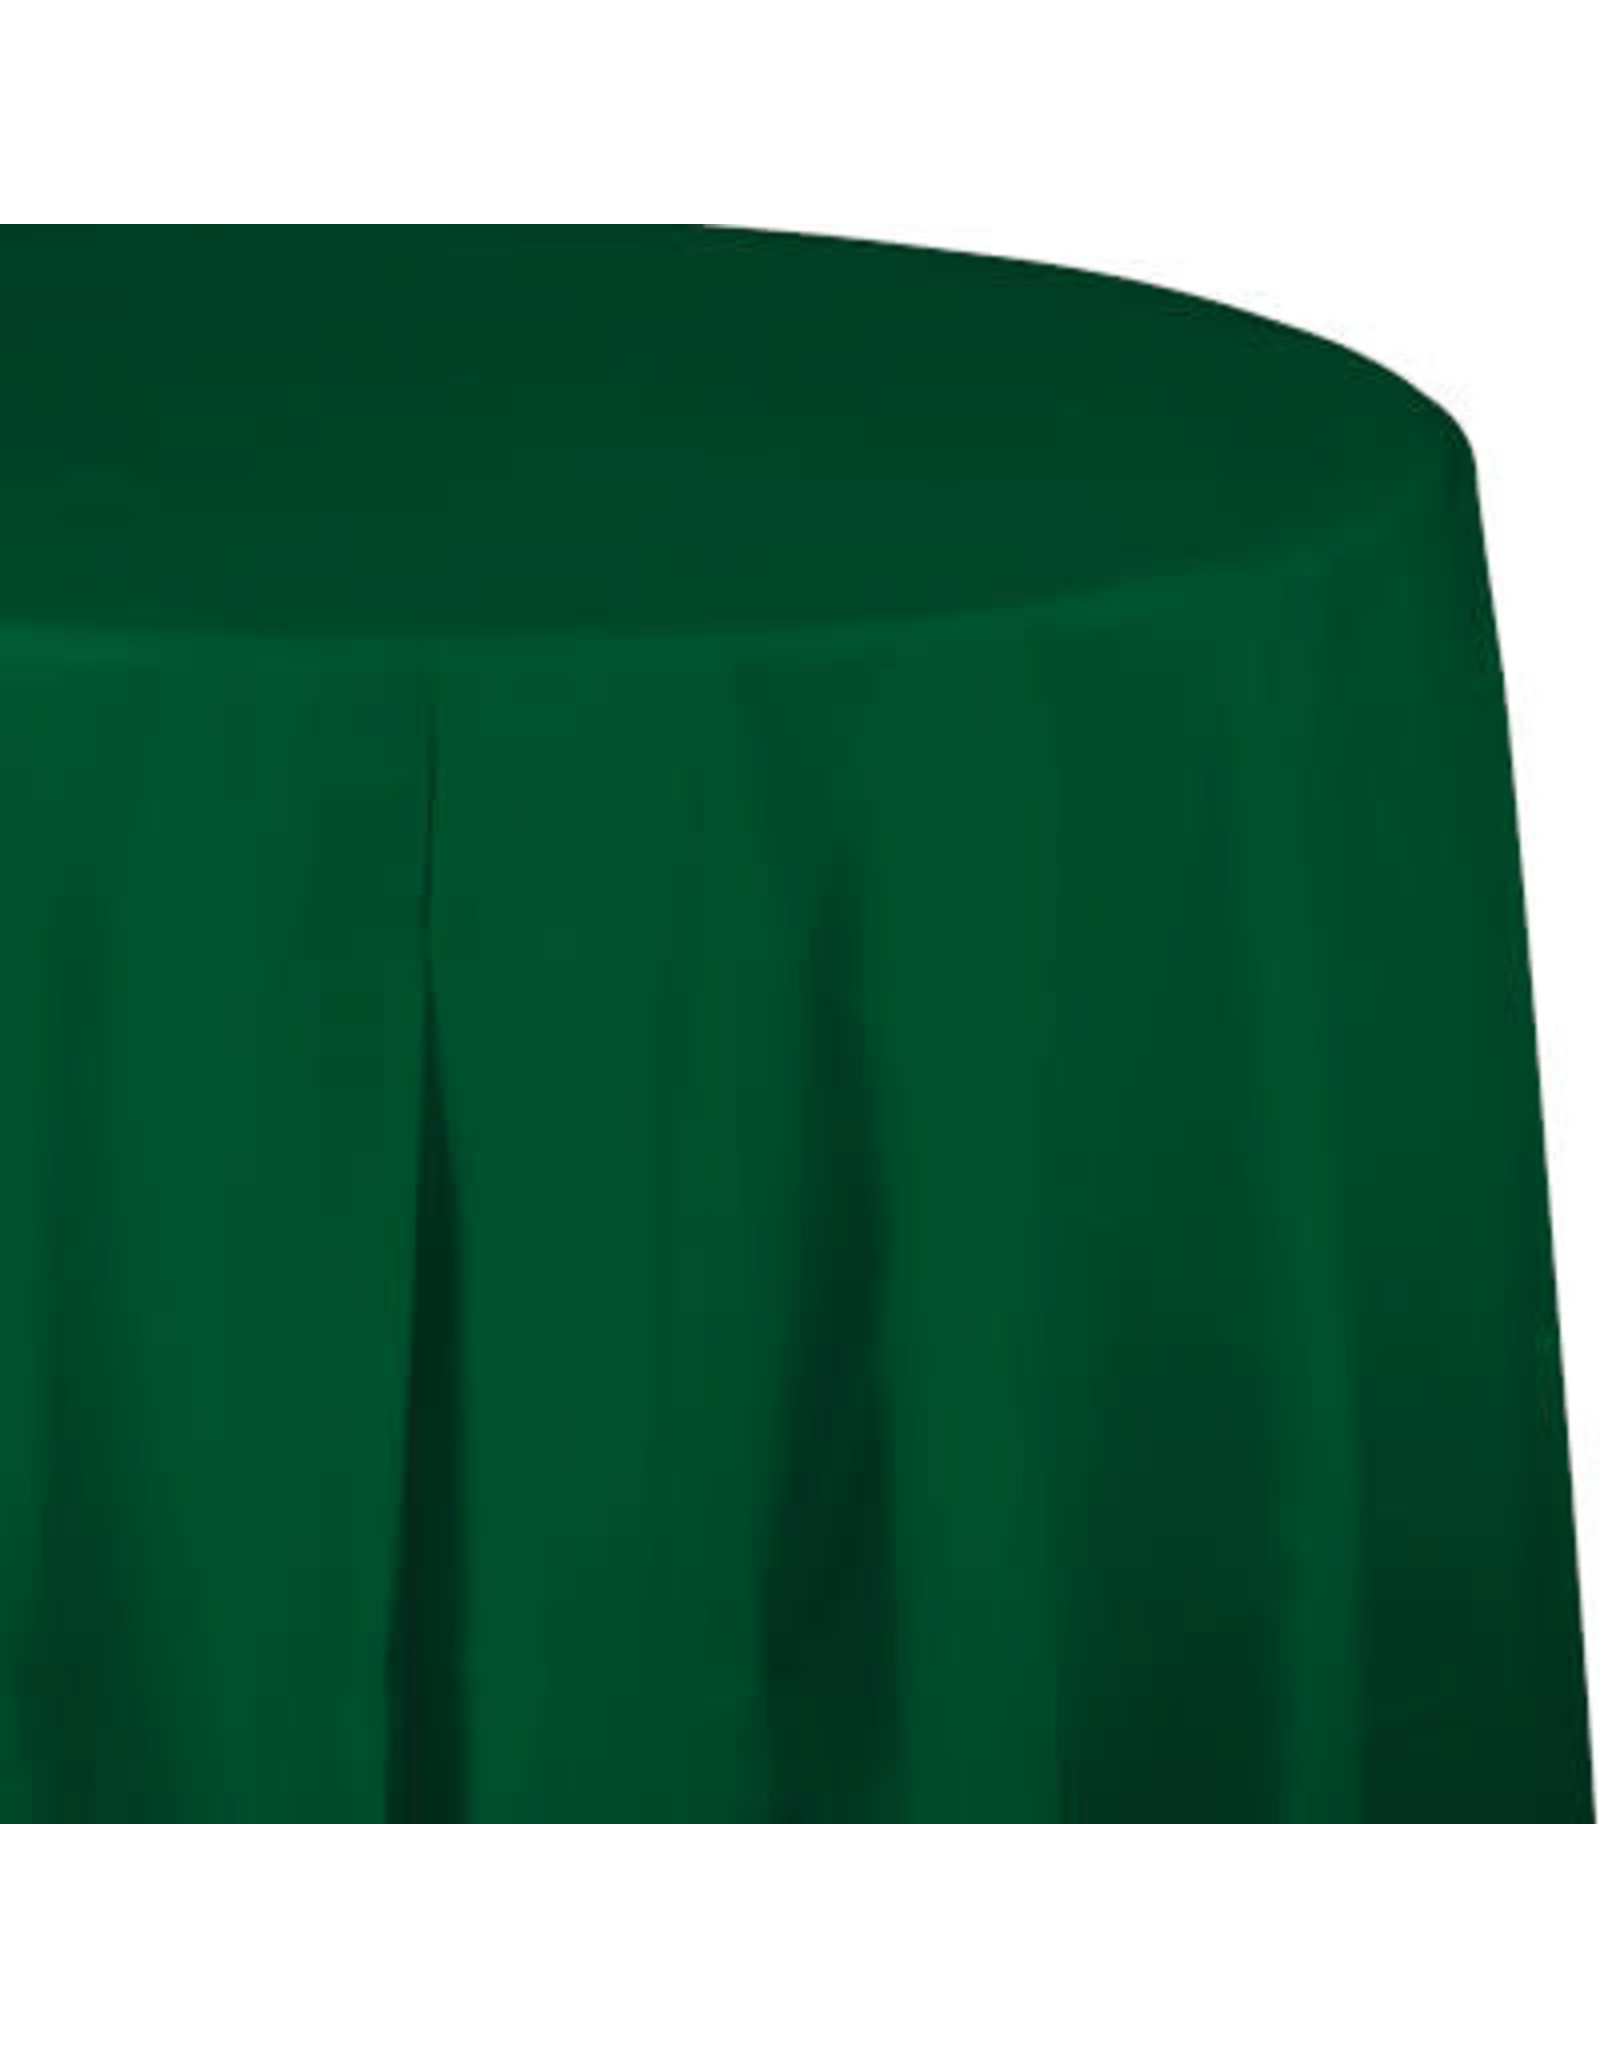 Touch of Color HUNTER GREEN ROUND PLASTIC TABLECLOTH